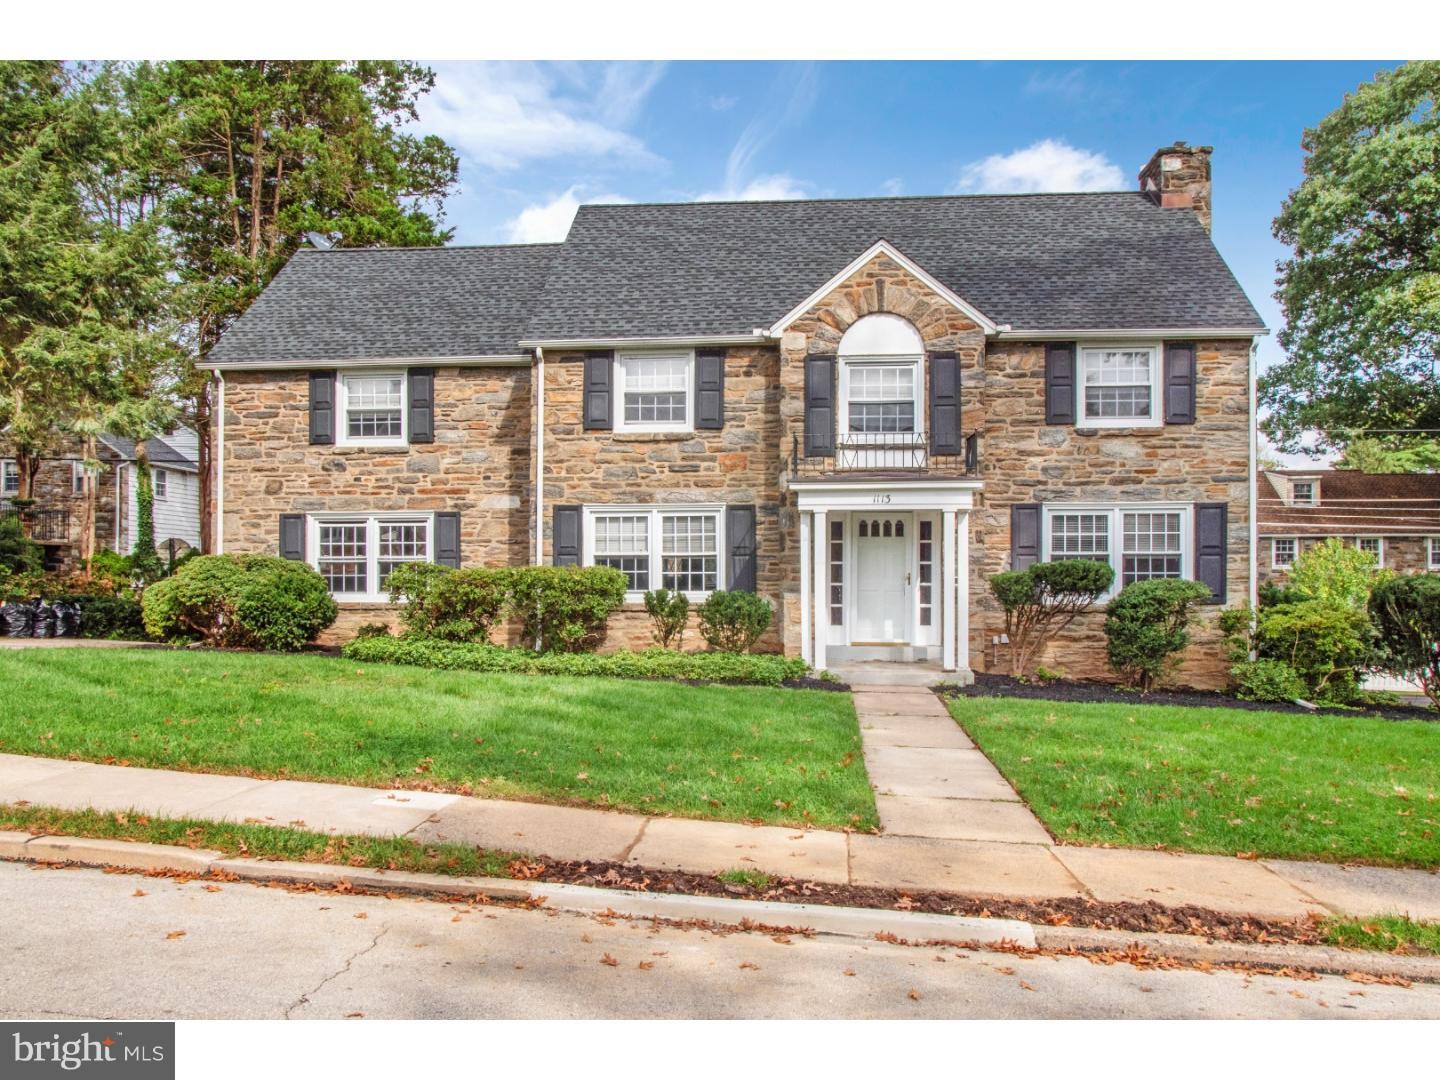 1113 Ormond Avenue Drexel Hill, PA 19026